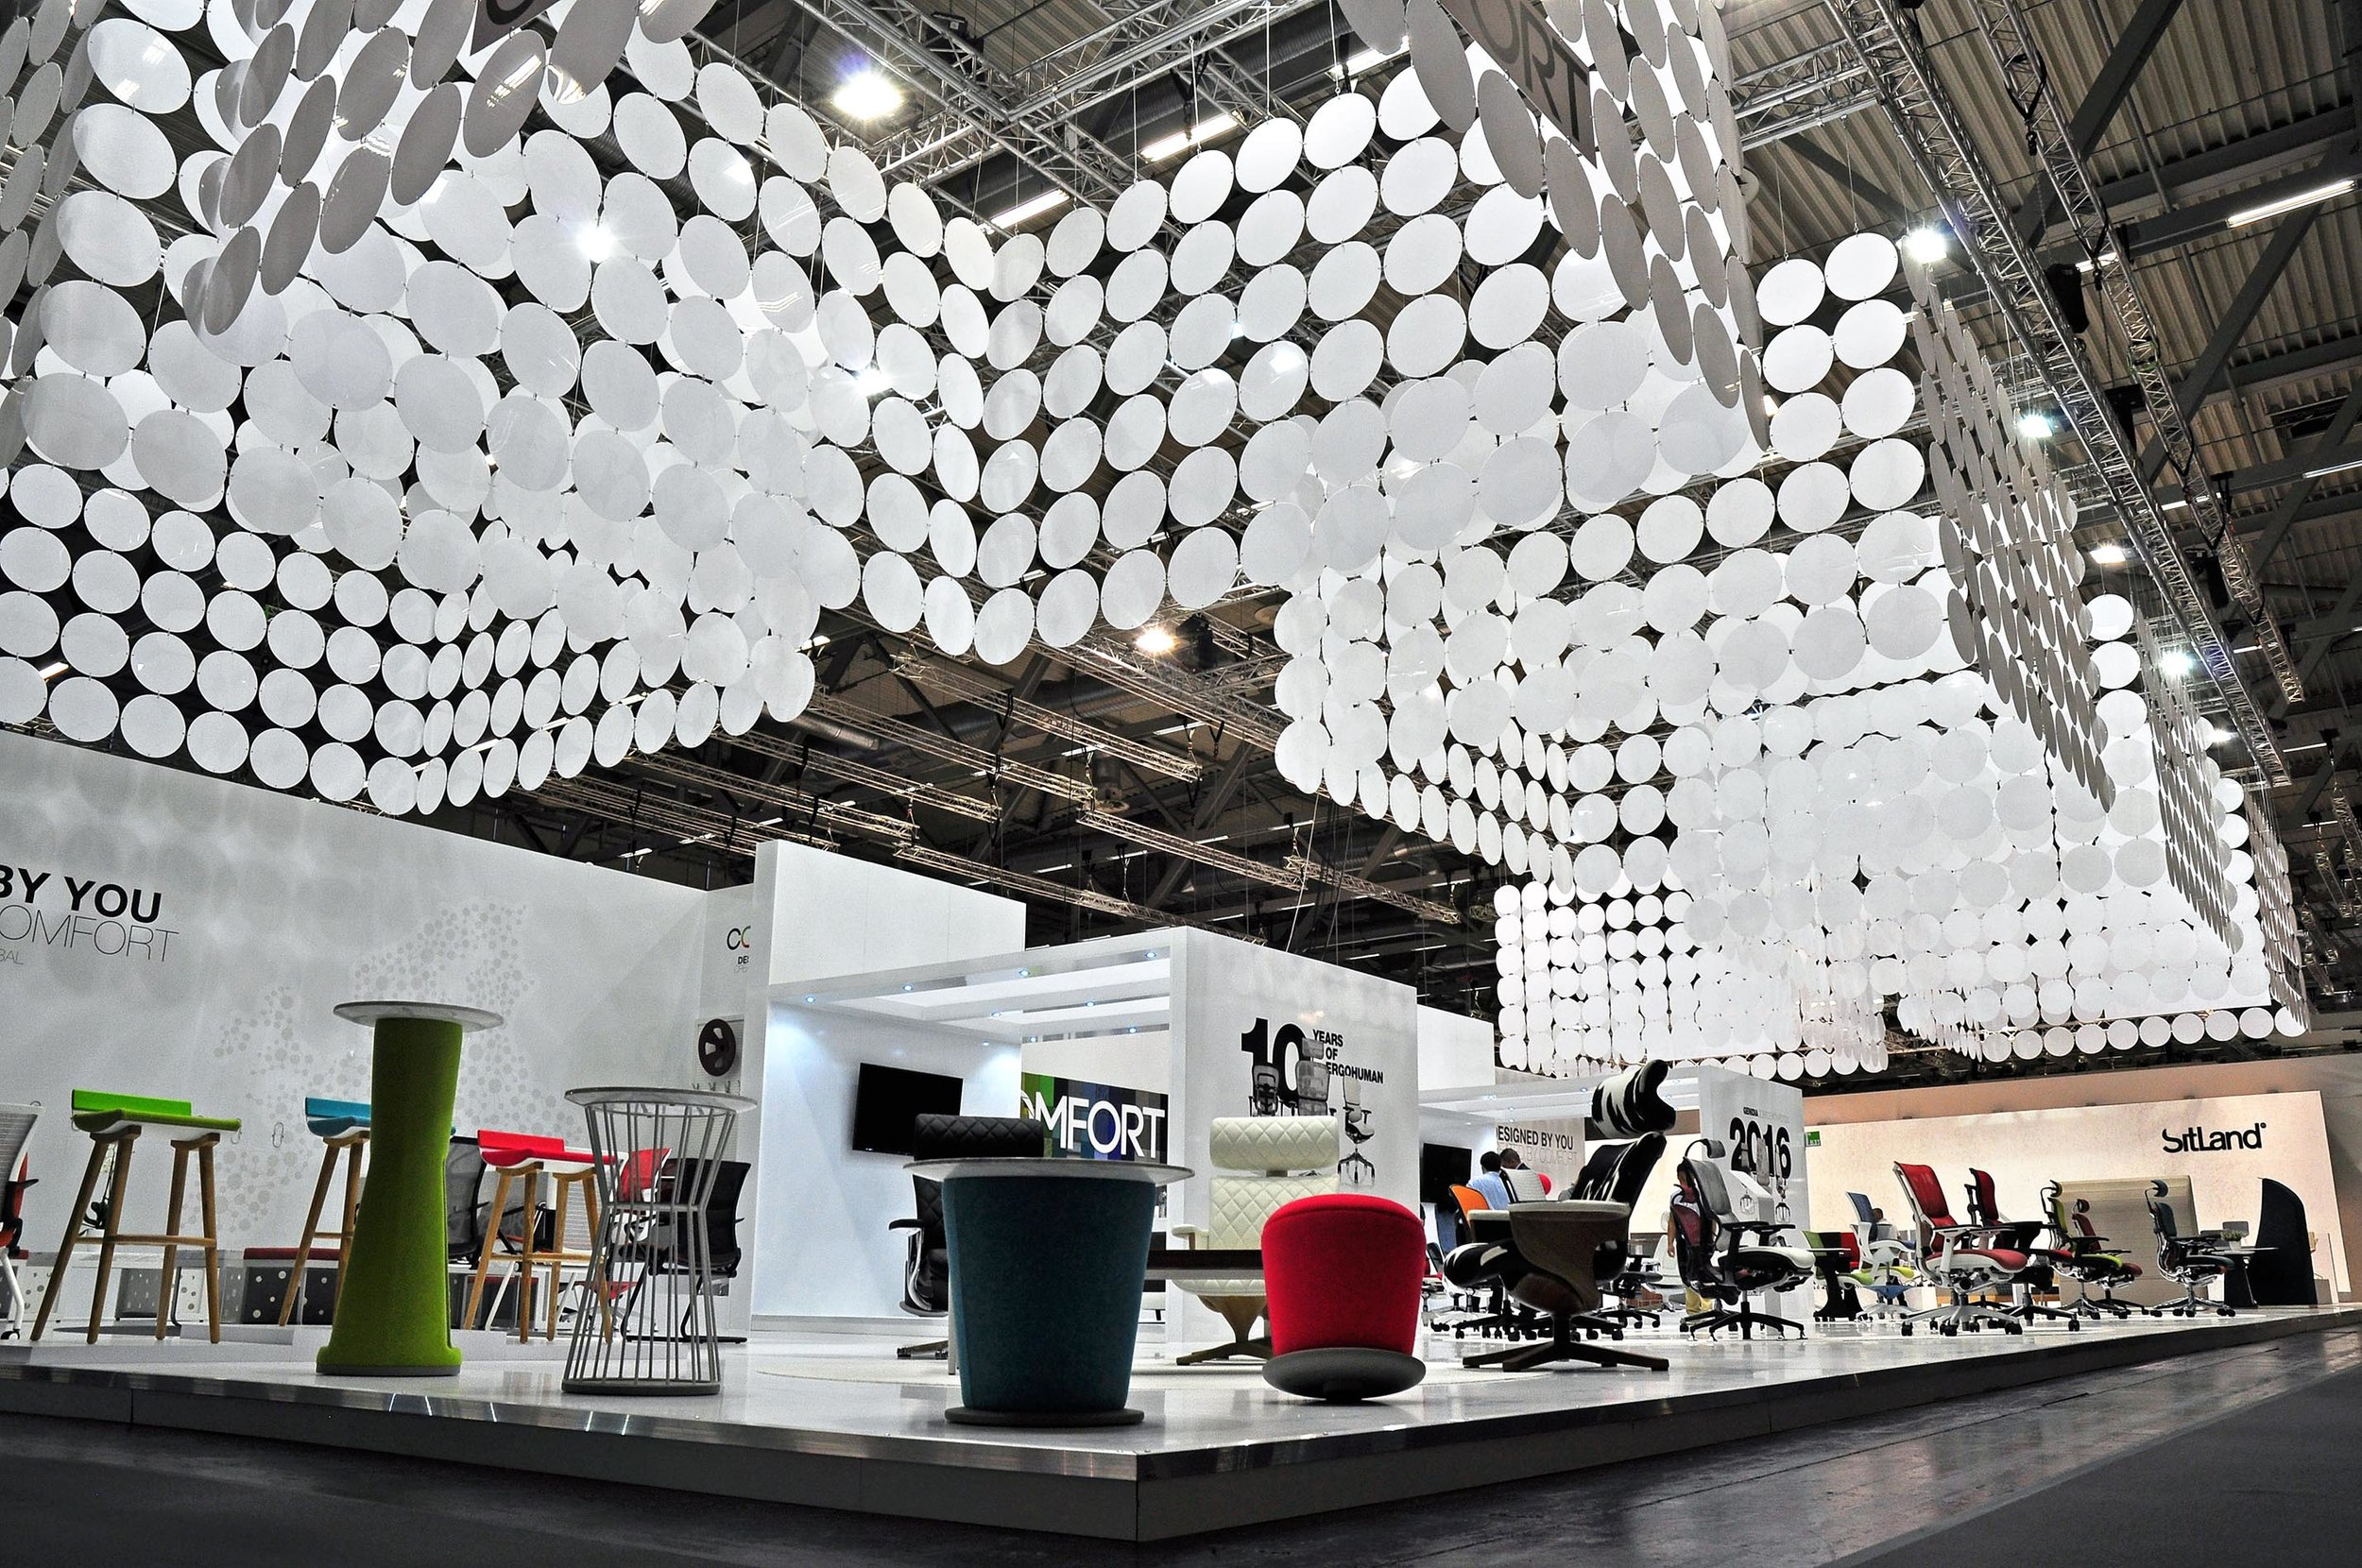 Orgatec 2018 expects to host over 60,000 visitors from around 120 different countries -